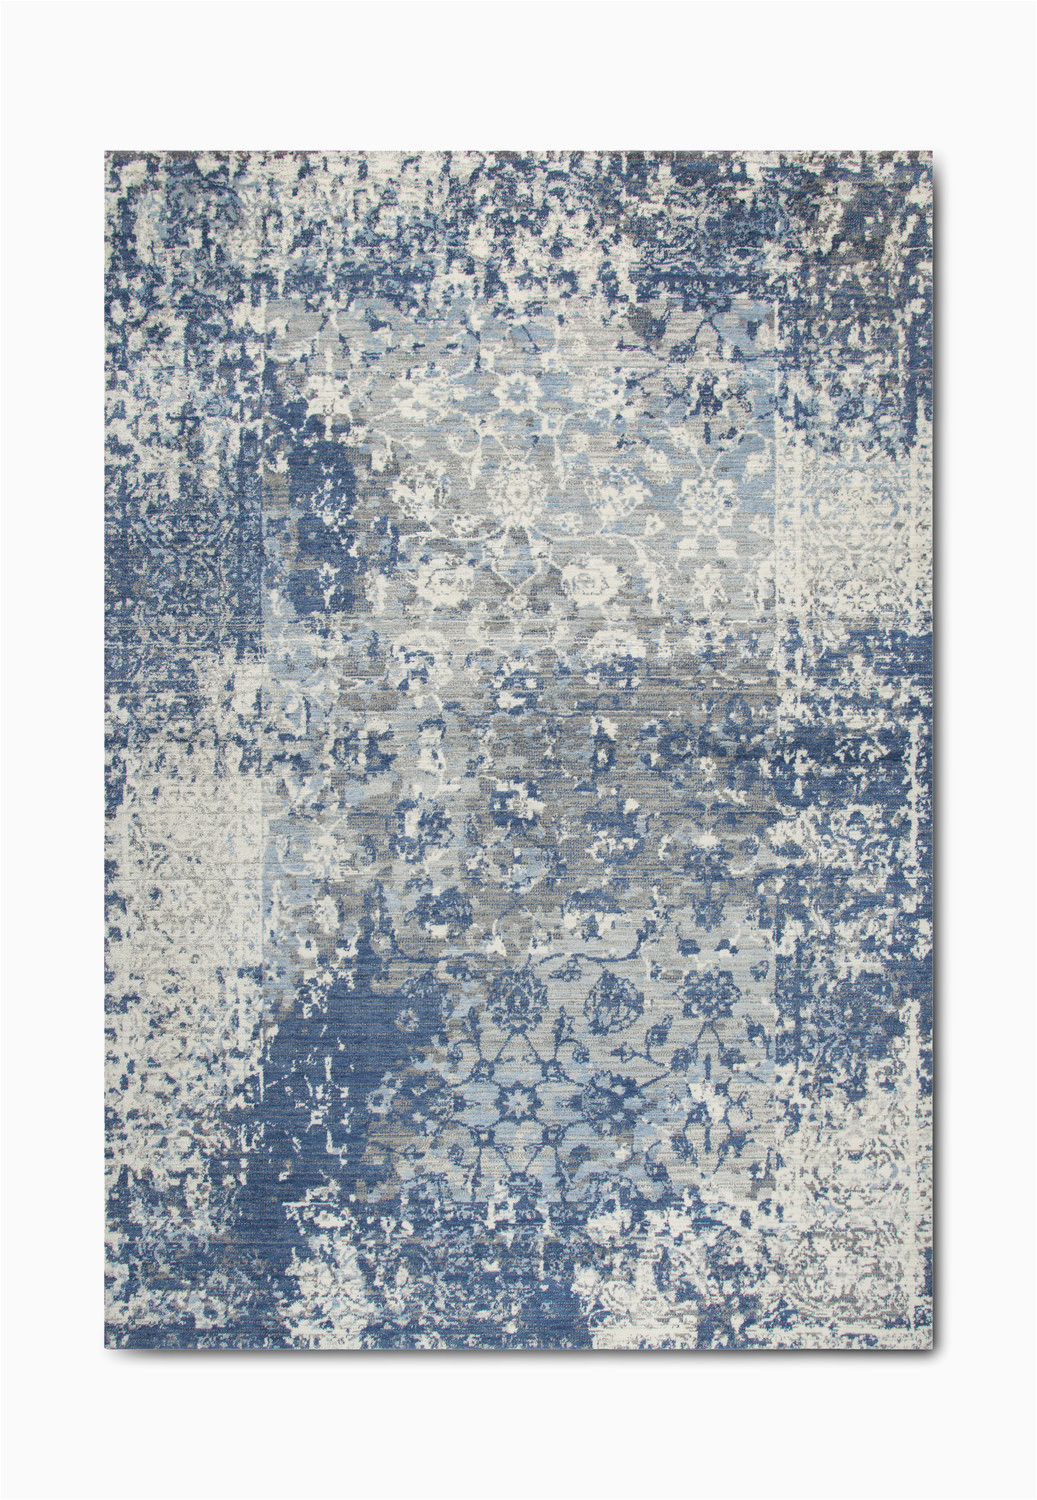 Blue and Gray Throw Rugs Gossamer Blue Grey area Rug